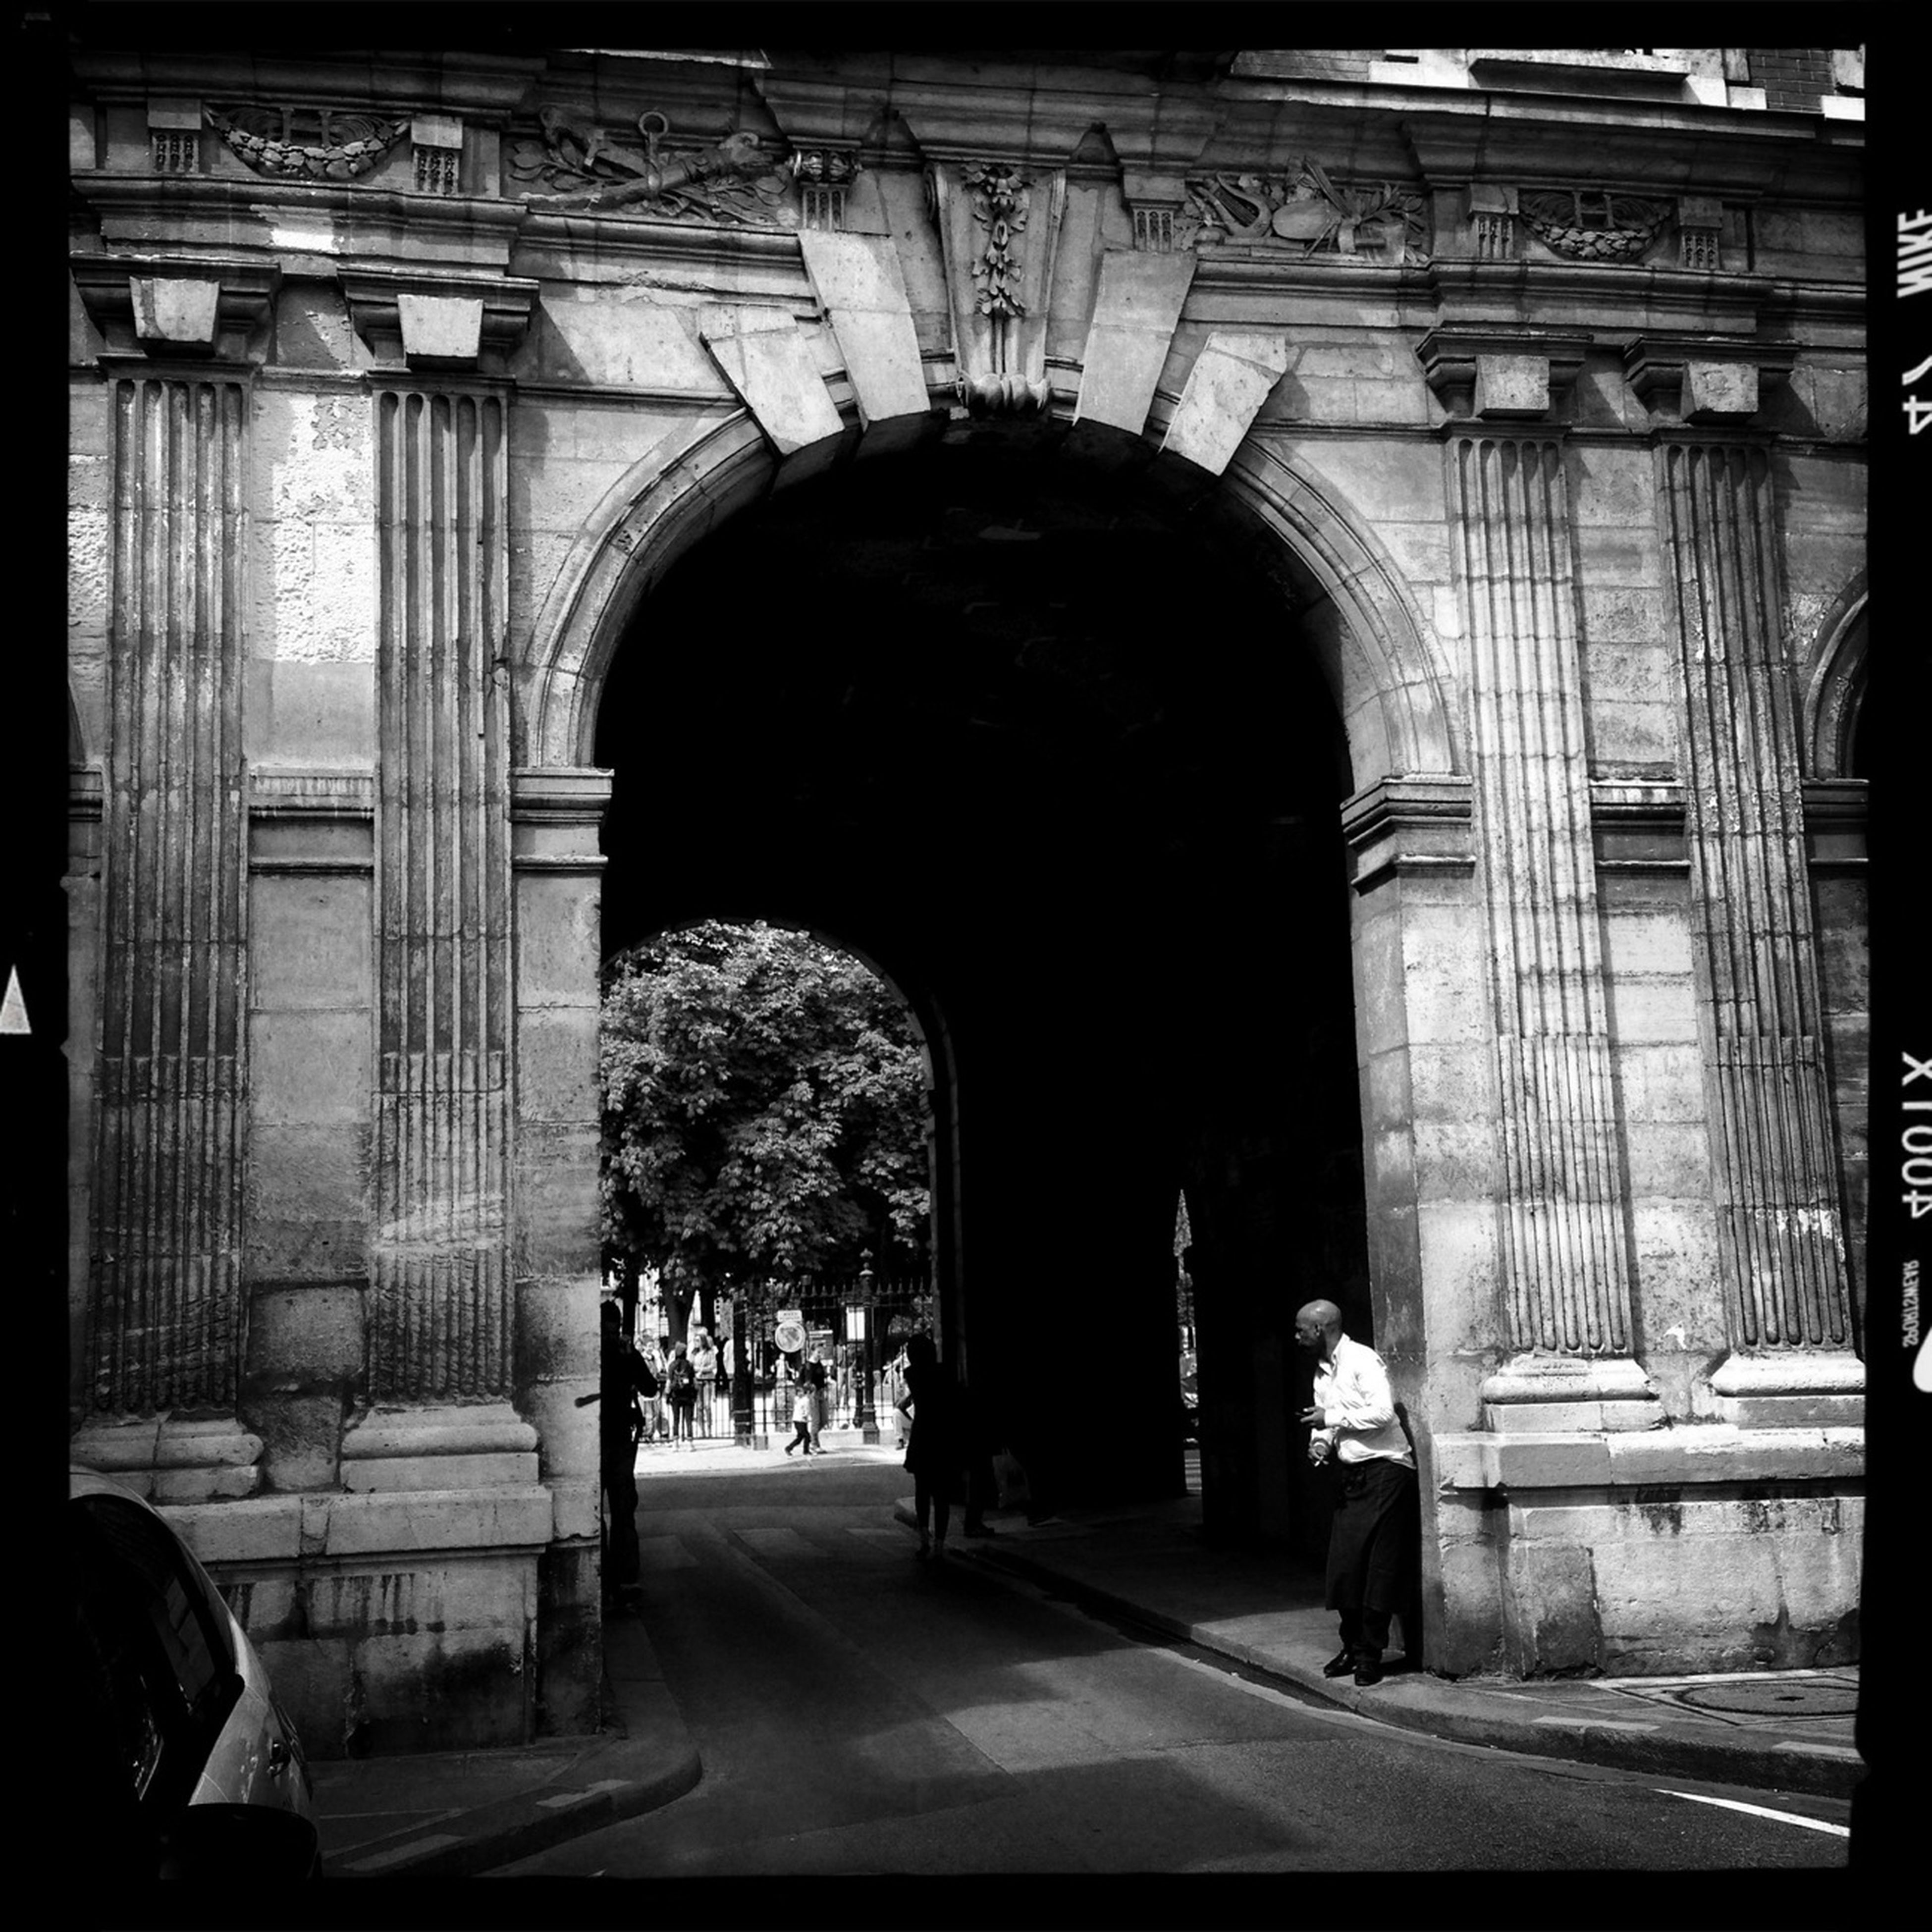 arch, architecture, built structure, building exterior, men, full length, walking, rear view, person, entrance, archway, lifestyles, gate, leisure activity, architectural column, day, the way forward